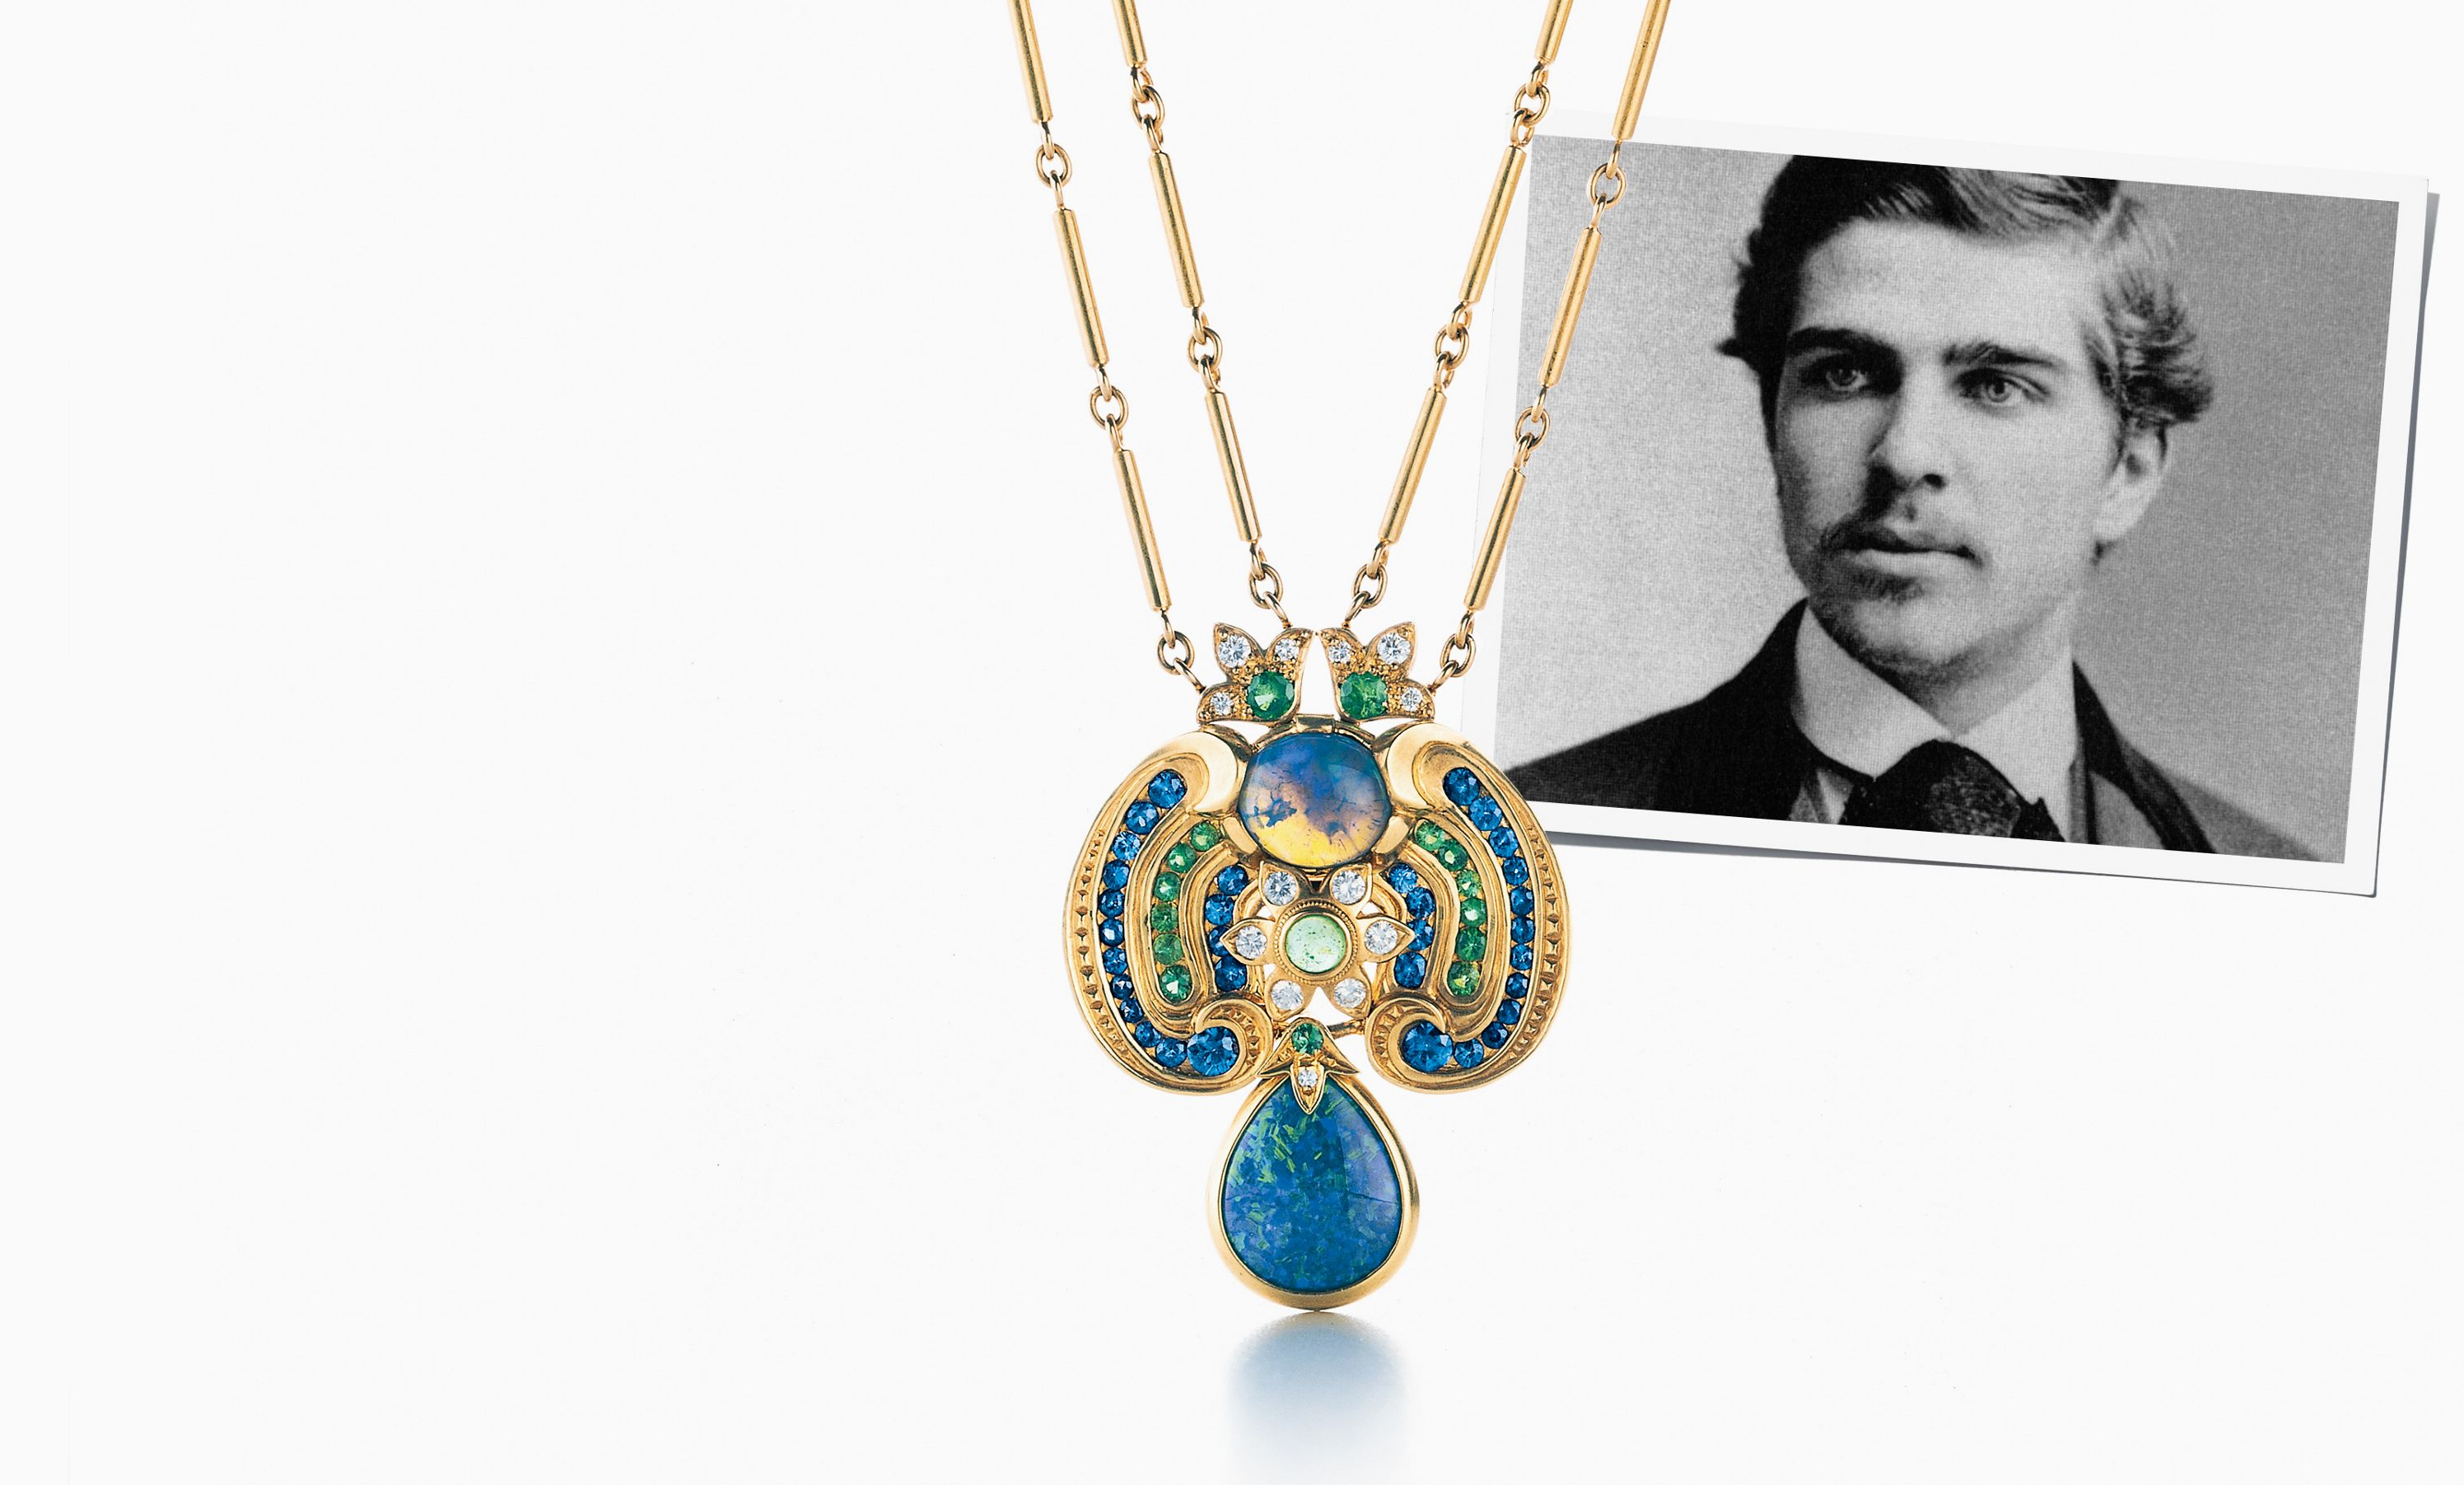 Louis Comfort Tiffany 簡介